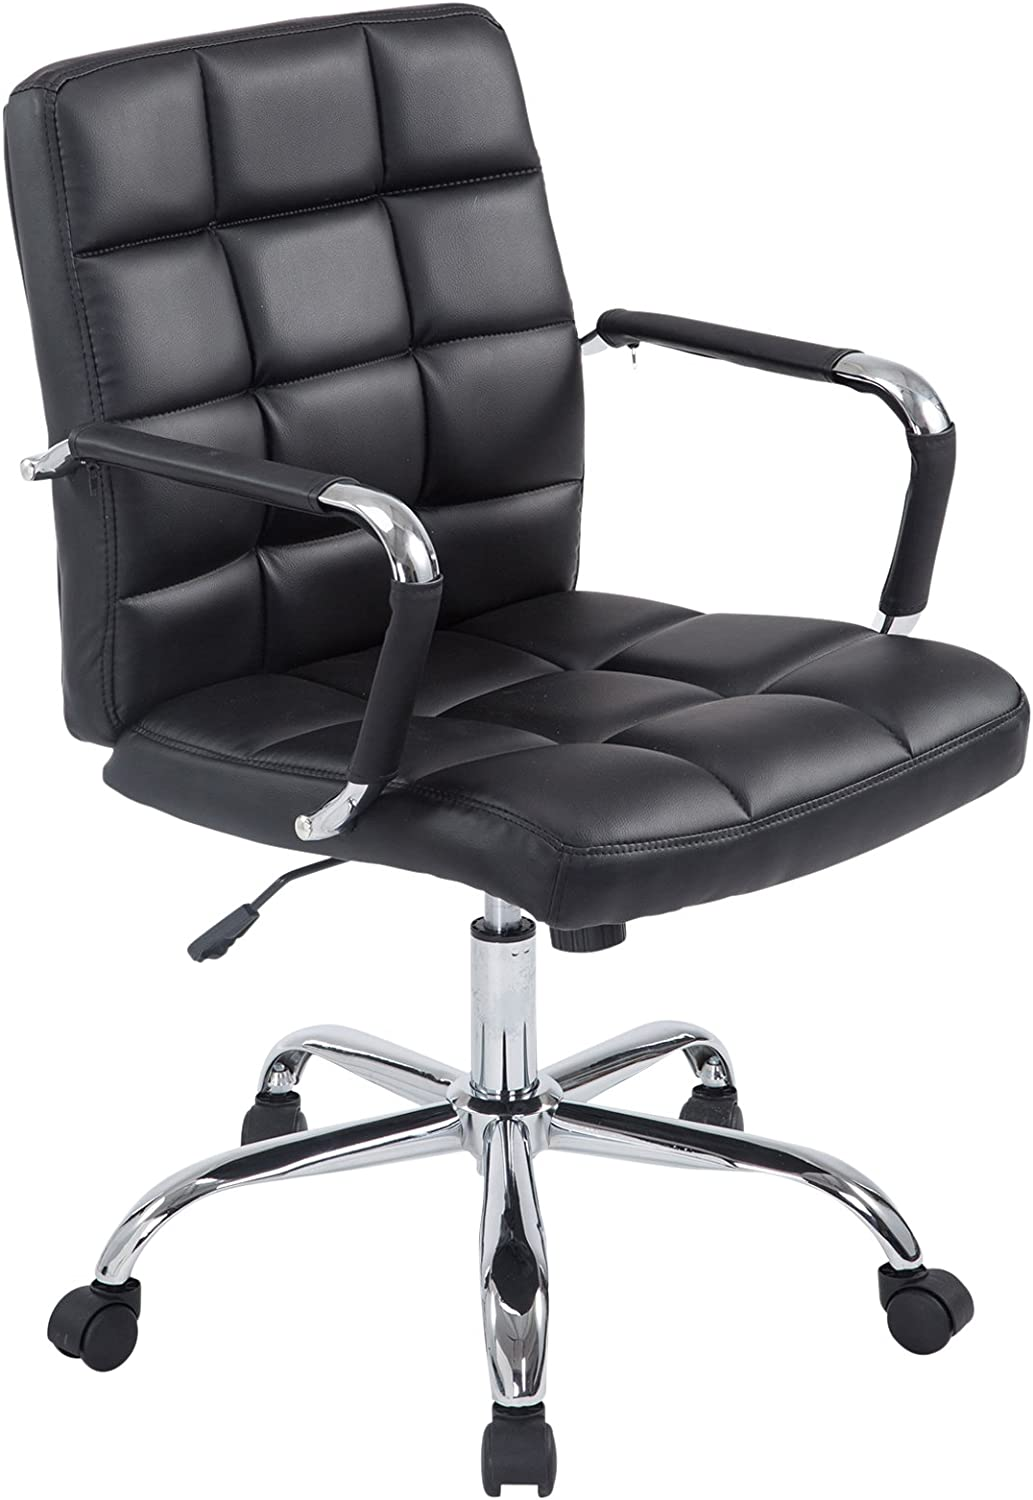 Poly and Bark Manchester Office Chair in Vegan Leather, Black